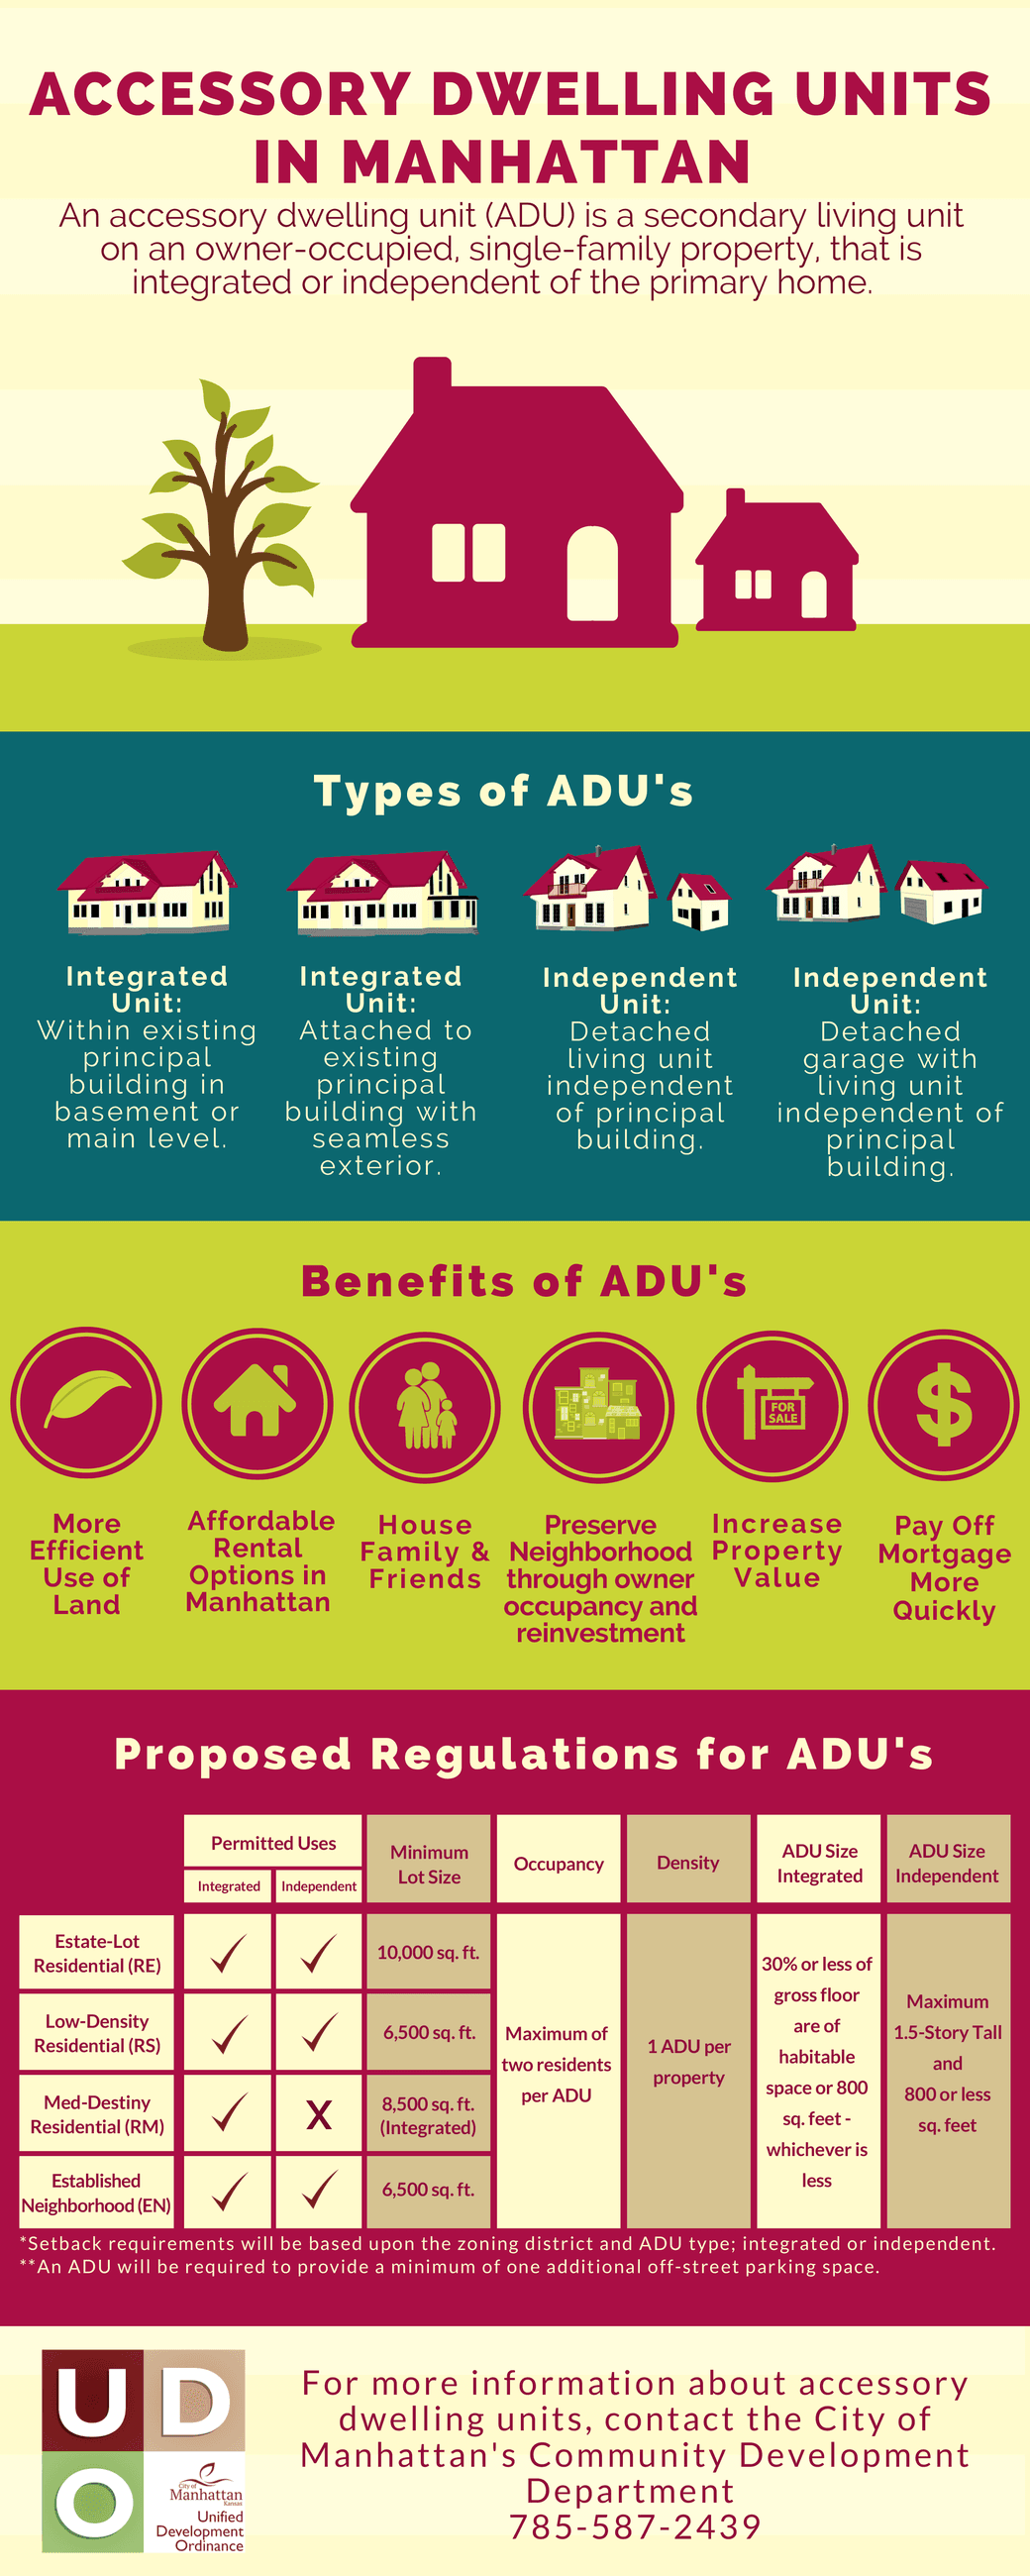 infographic explaining the ADU regulations